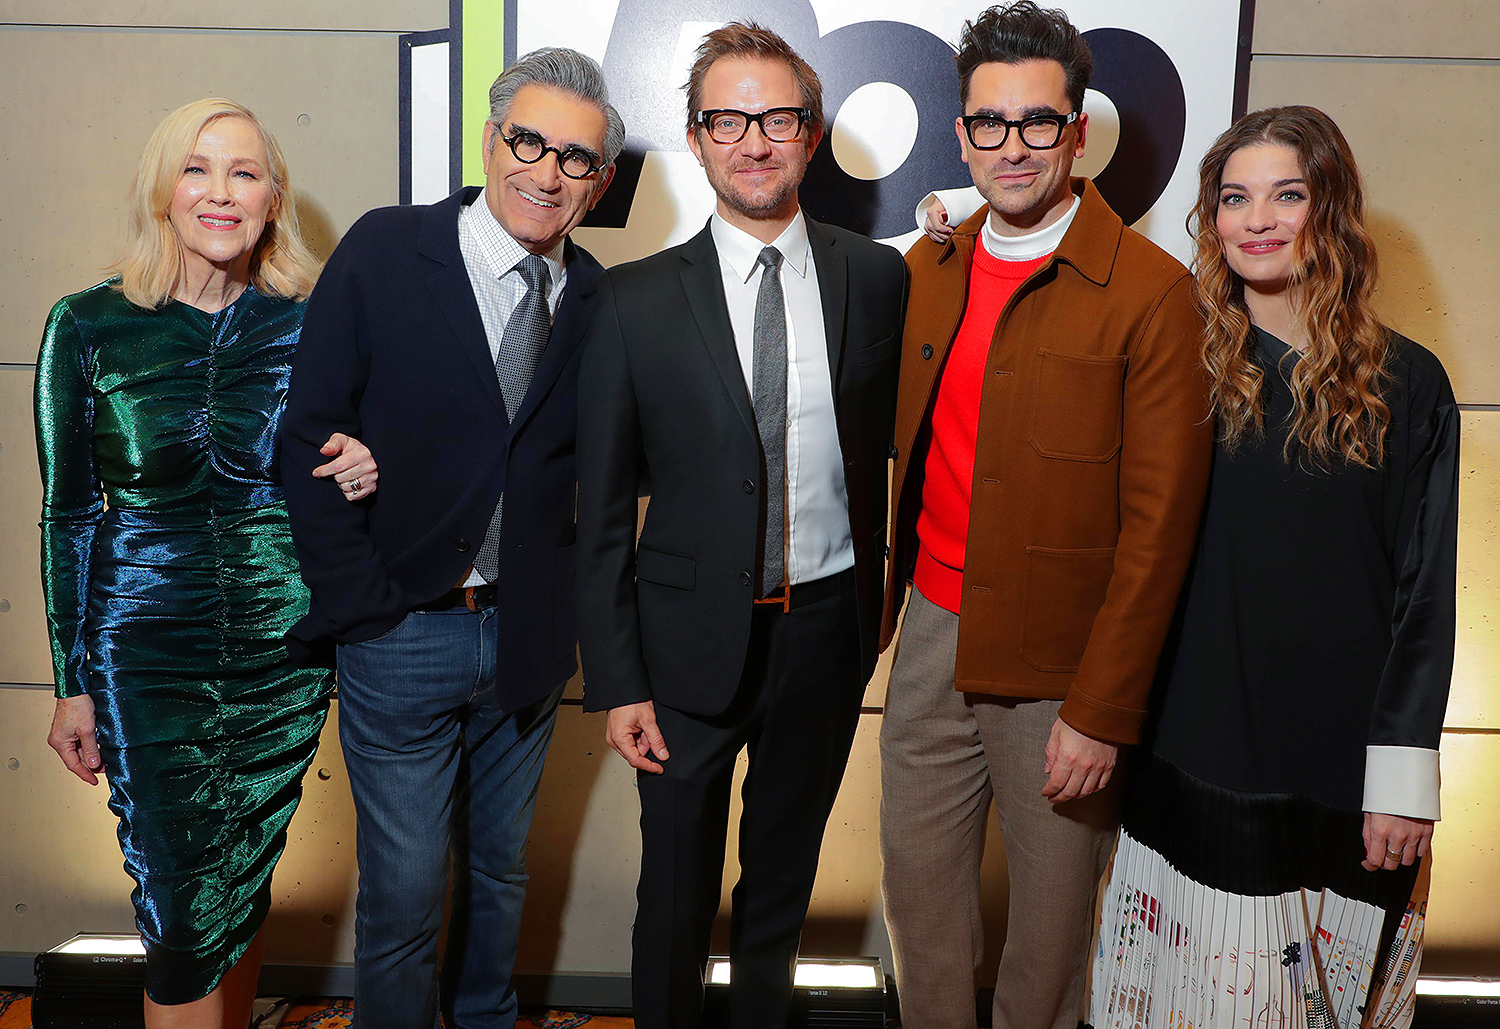 Catherine O'Hara, Executive Producer Eugene Levy, President of Pop TV Brad Schwartz, Executive Producer Dan Levy and Annie Murphy from SCHITT'S CREEK